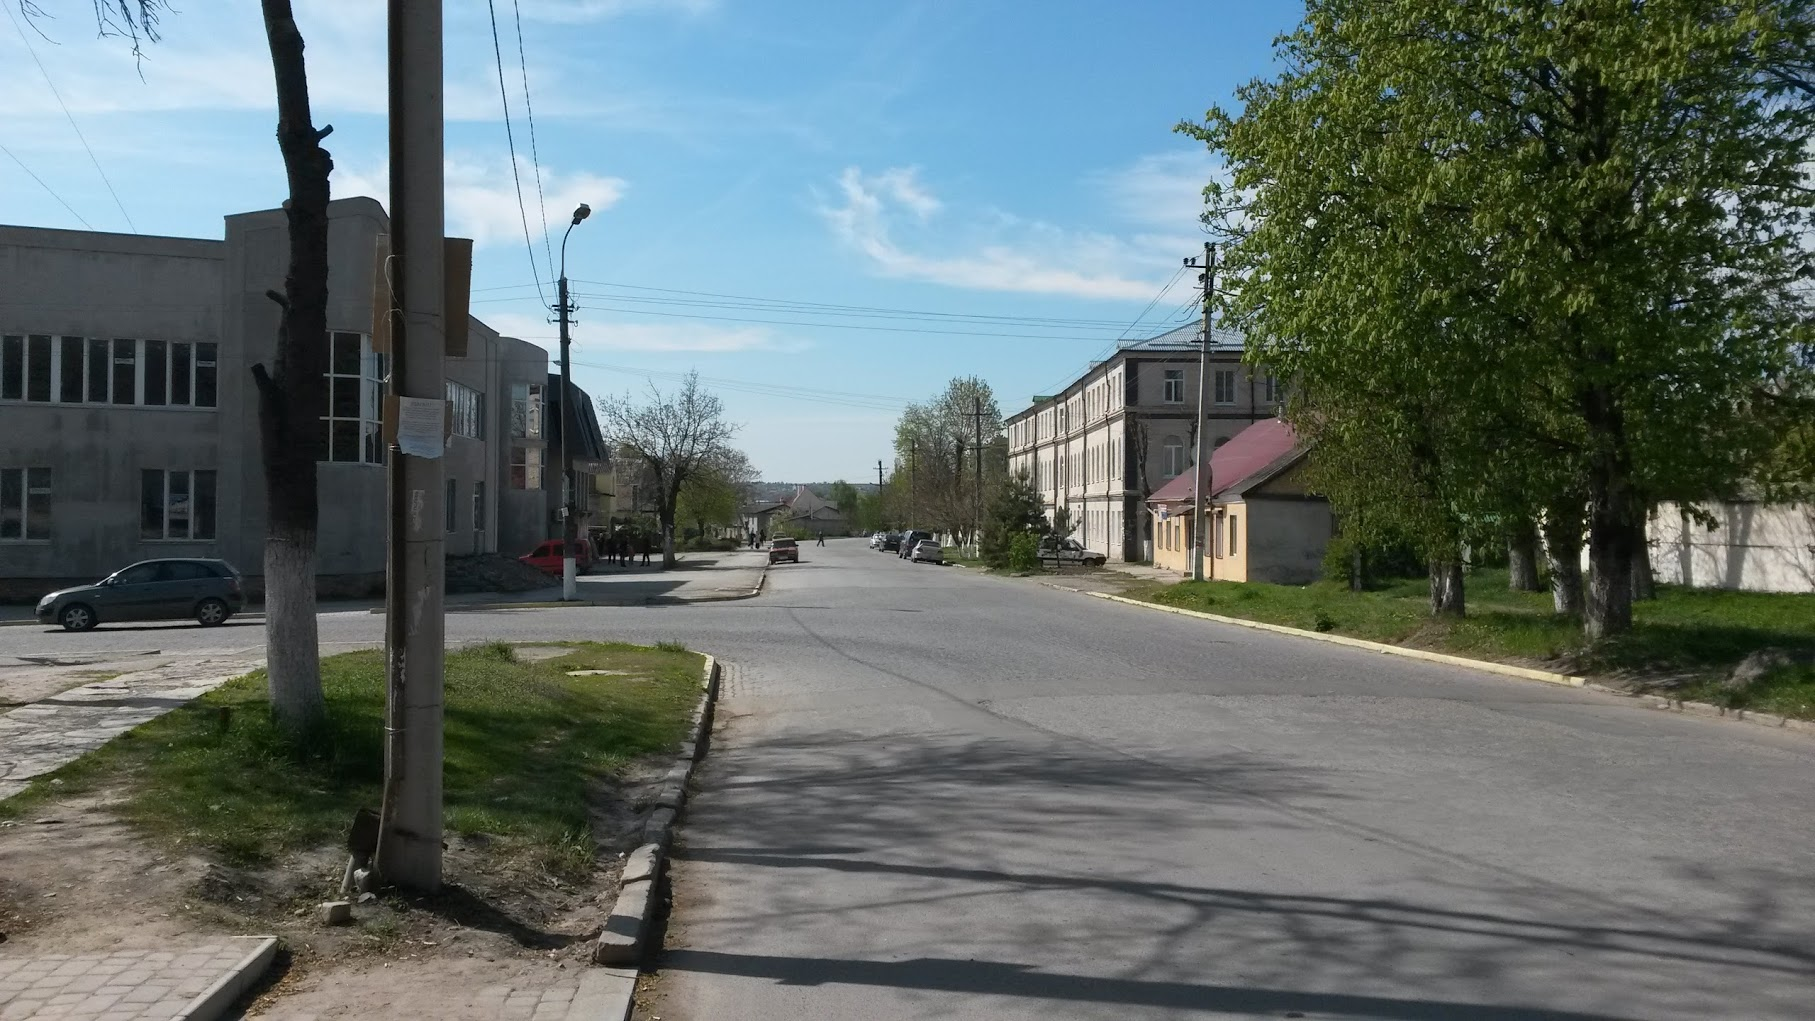 Entrance to the second ghetto, 2017